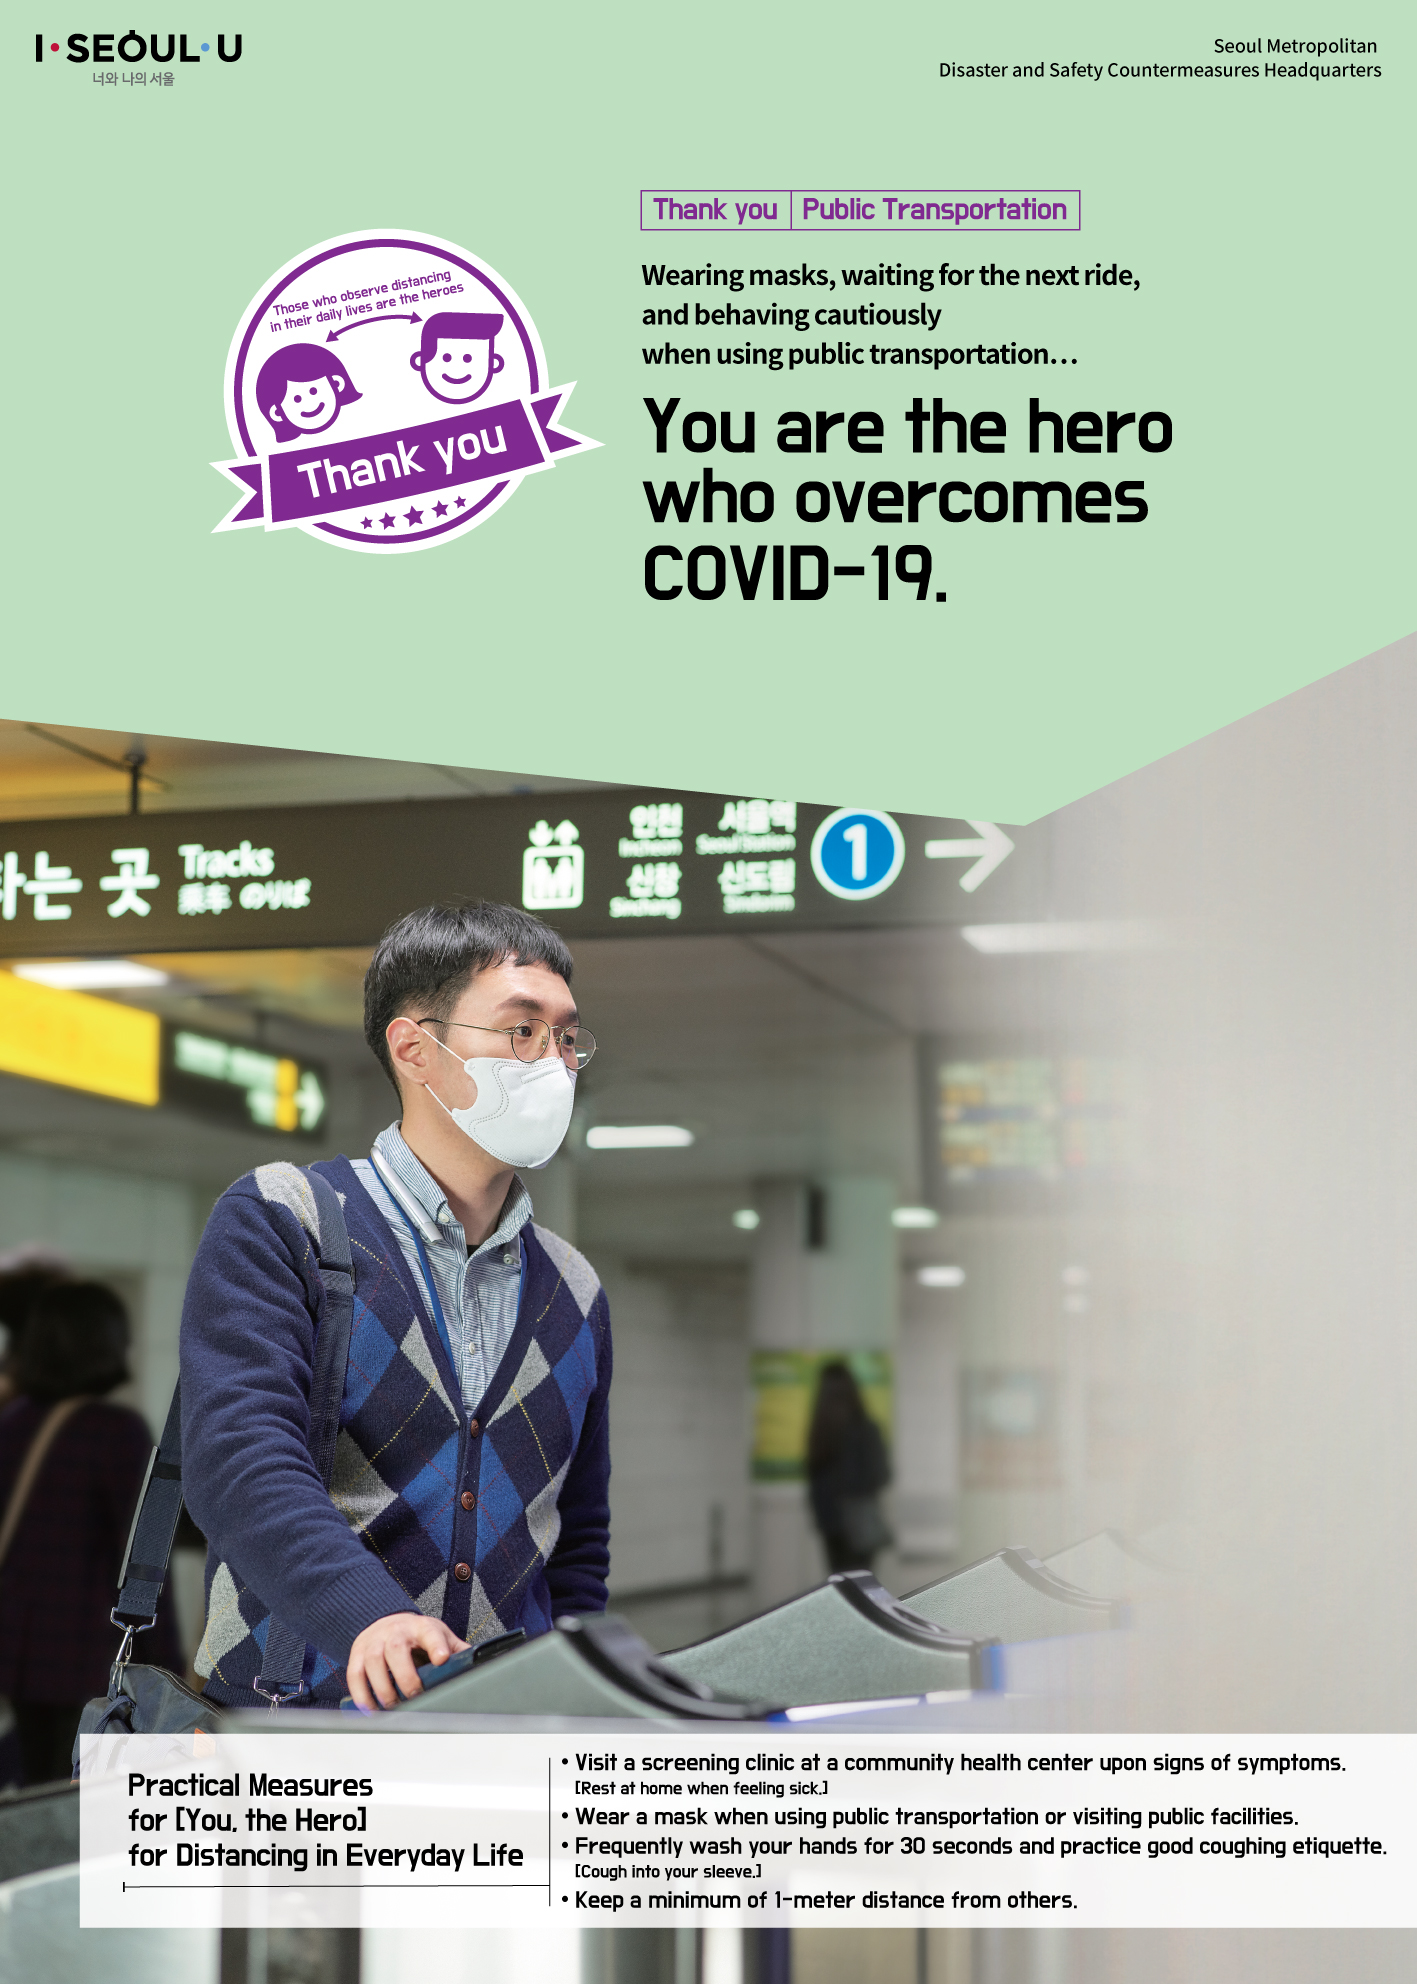 Public Transportation Though we wear masks, wait for the next ride, and behave cautiously when using public transportation…